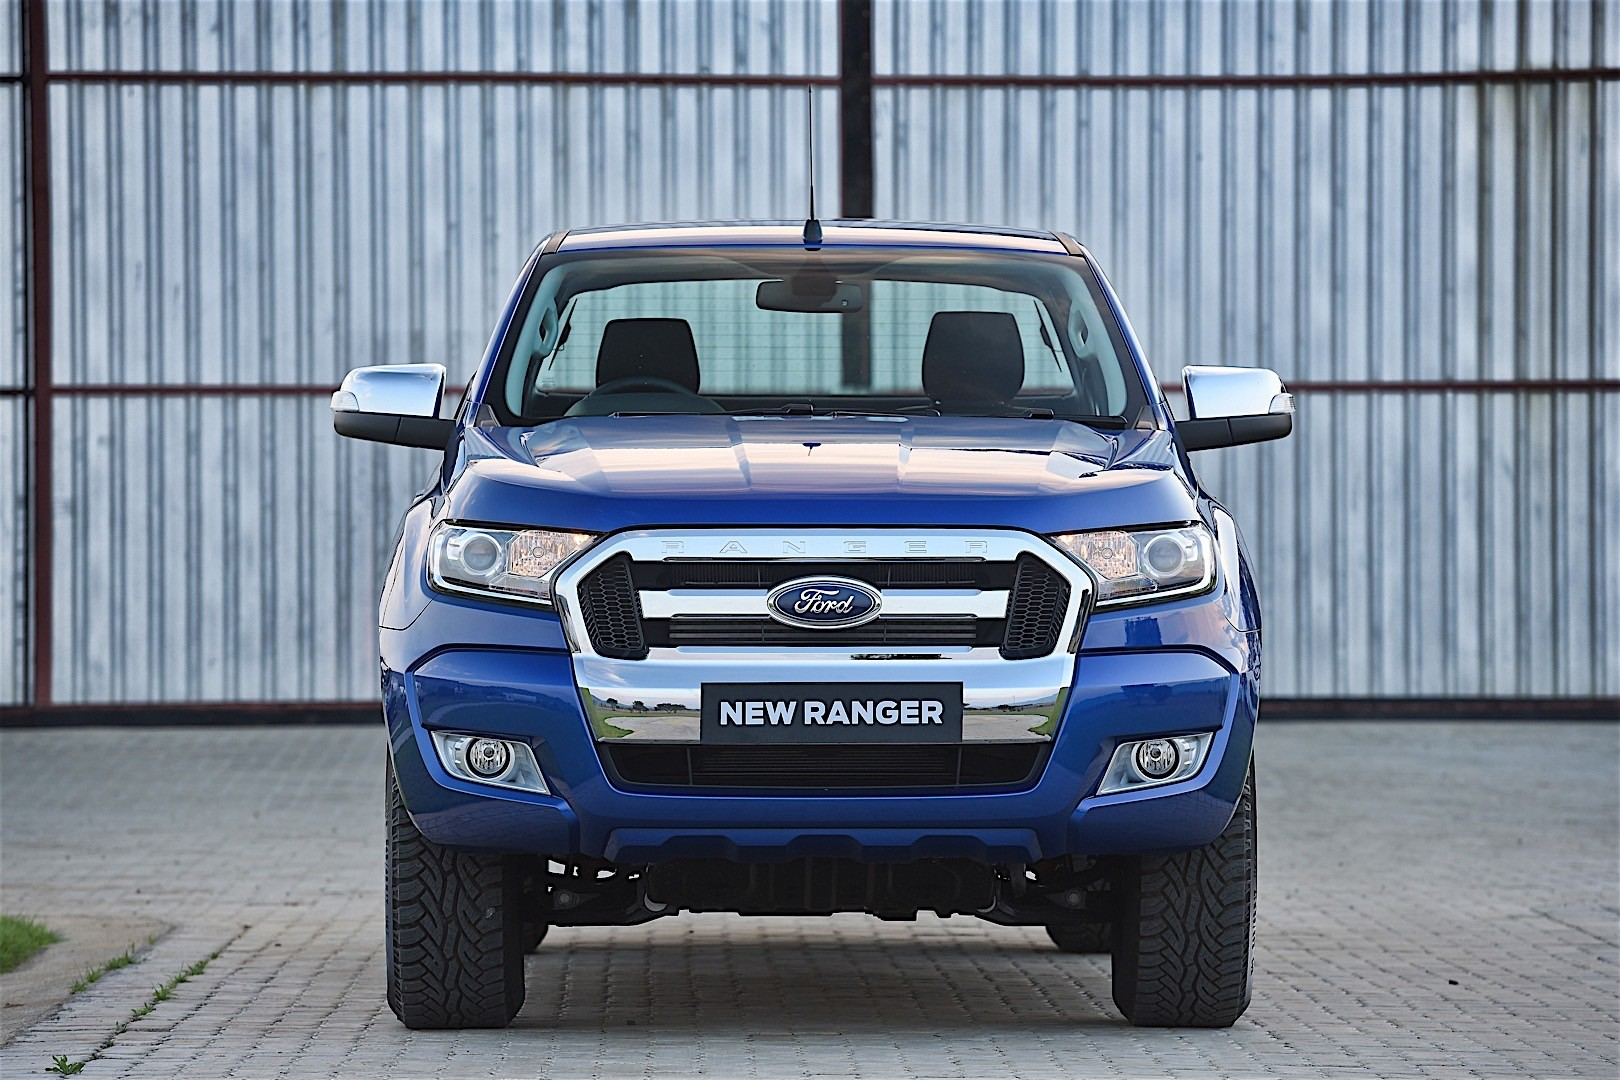 2016 Ford Ranger >> FORD Ranger Super Cab specs & photos - 2015, 2016, 2017, 2018, 2019, 2020 - autoevolution